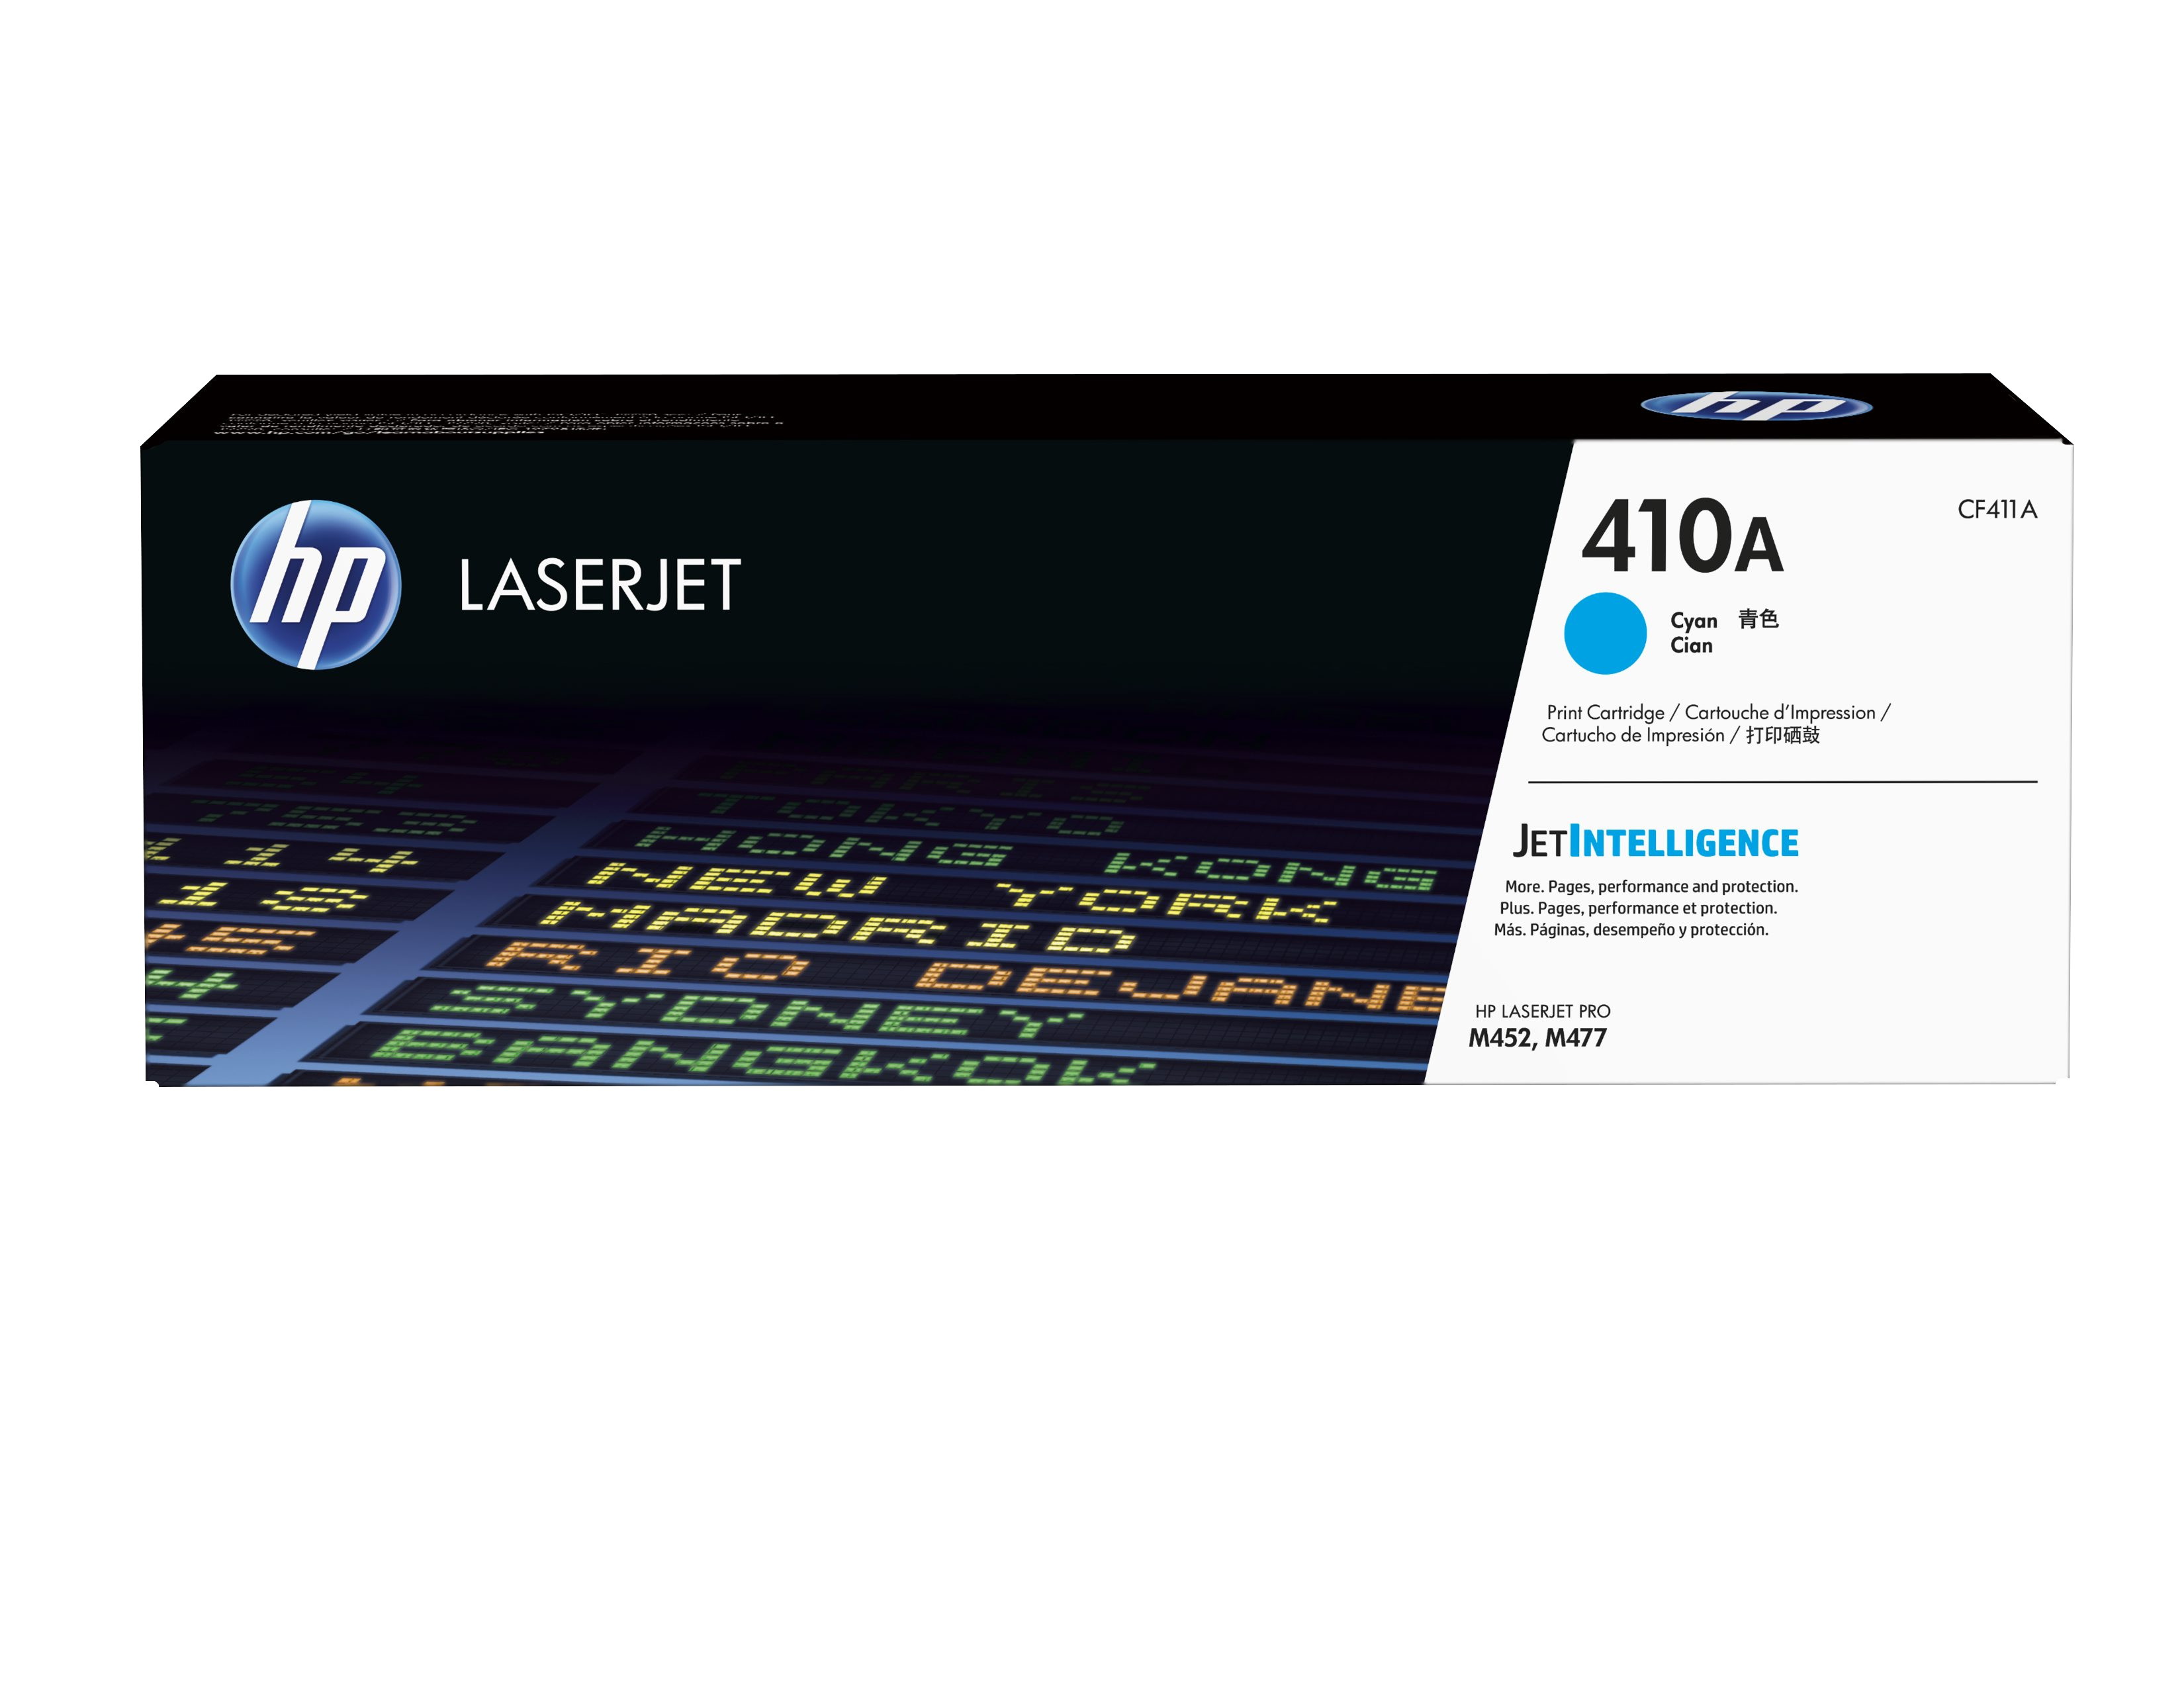 HP 410A - Cyan - Original - LaserJet - Toner Cartridge ( CF411A ) - For Color LaserJet Pro M452, MFP M377, MFP M477 CF411A - C2000